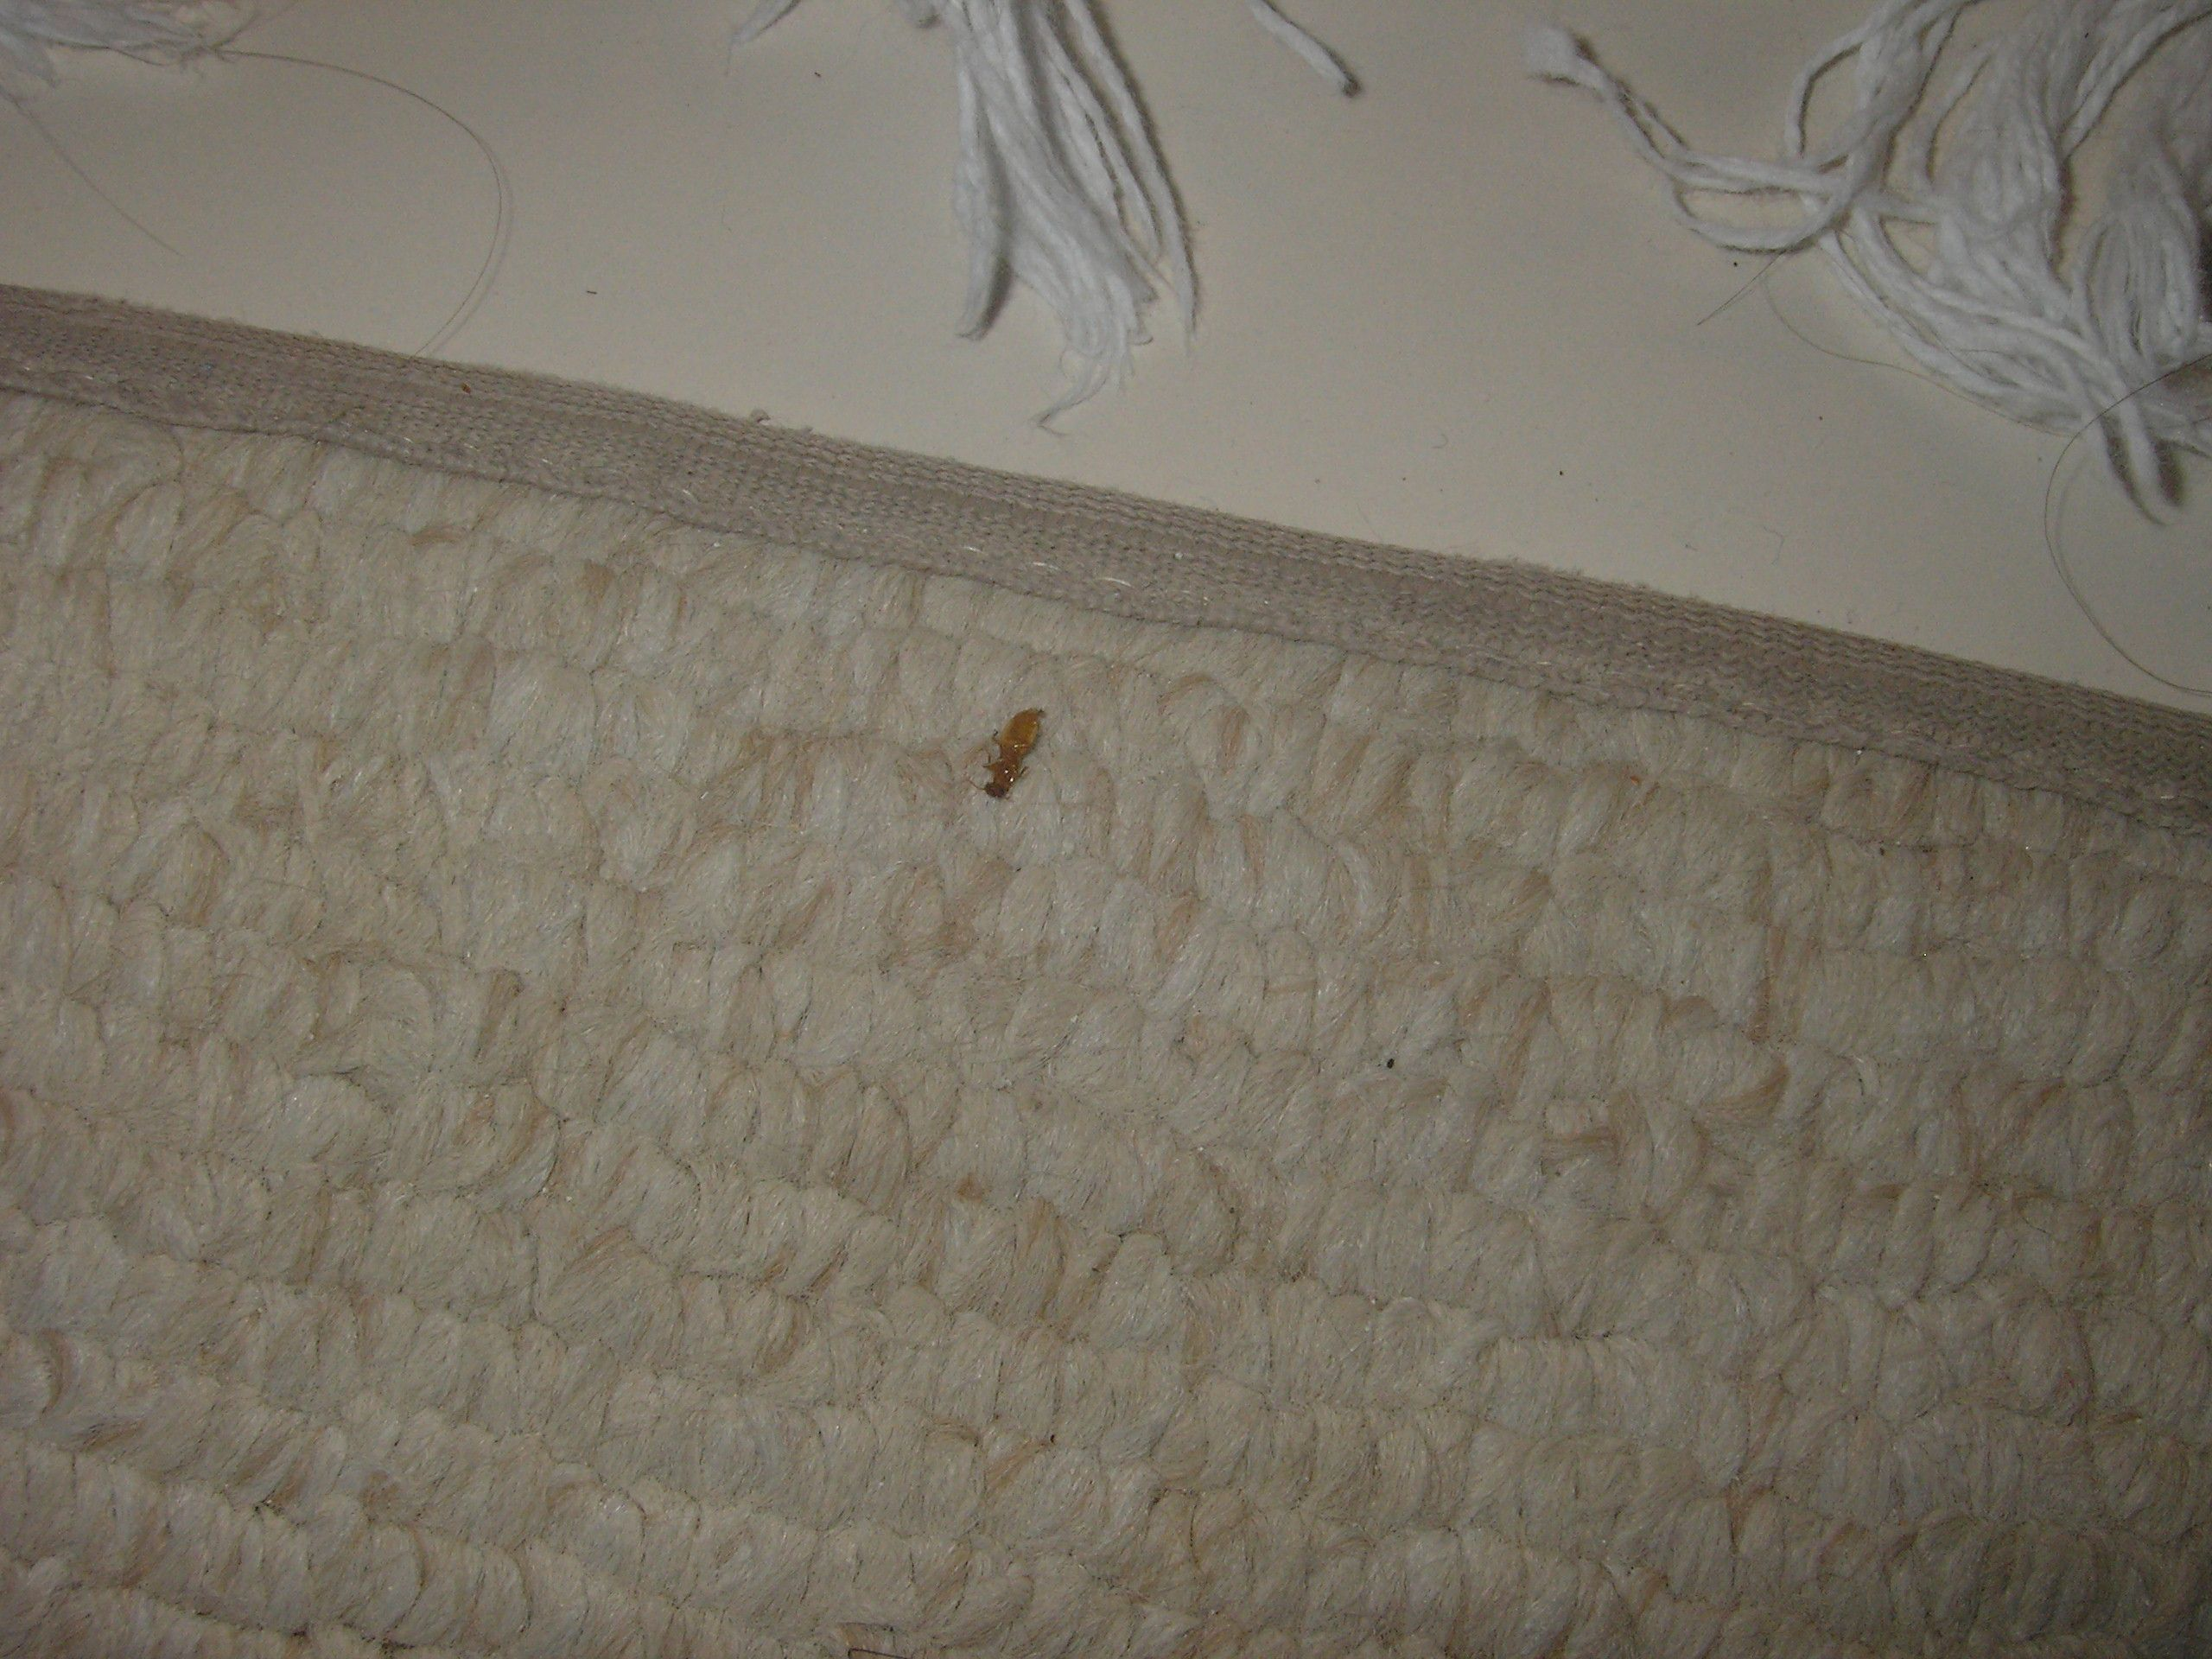 Help I Stayed At A Place That Has Bed Bugs